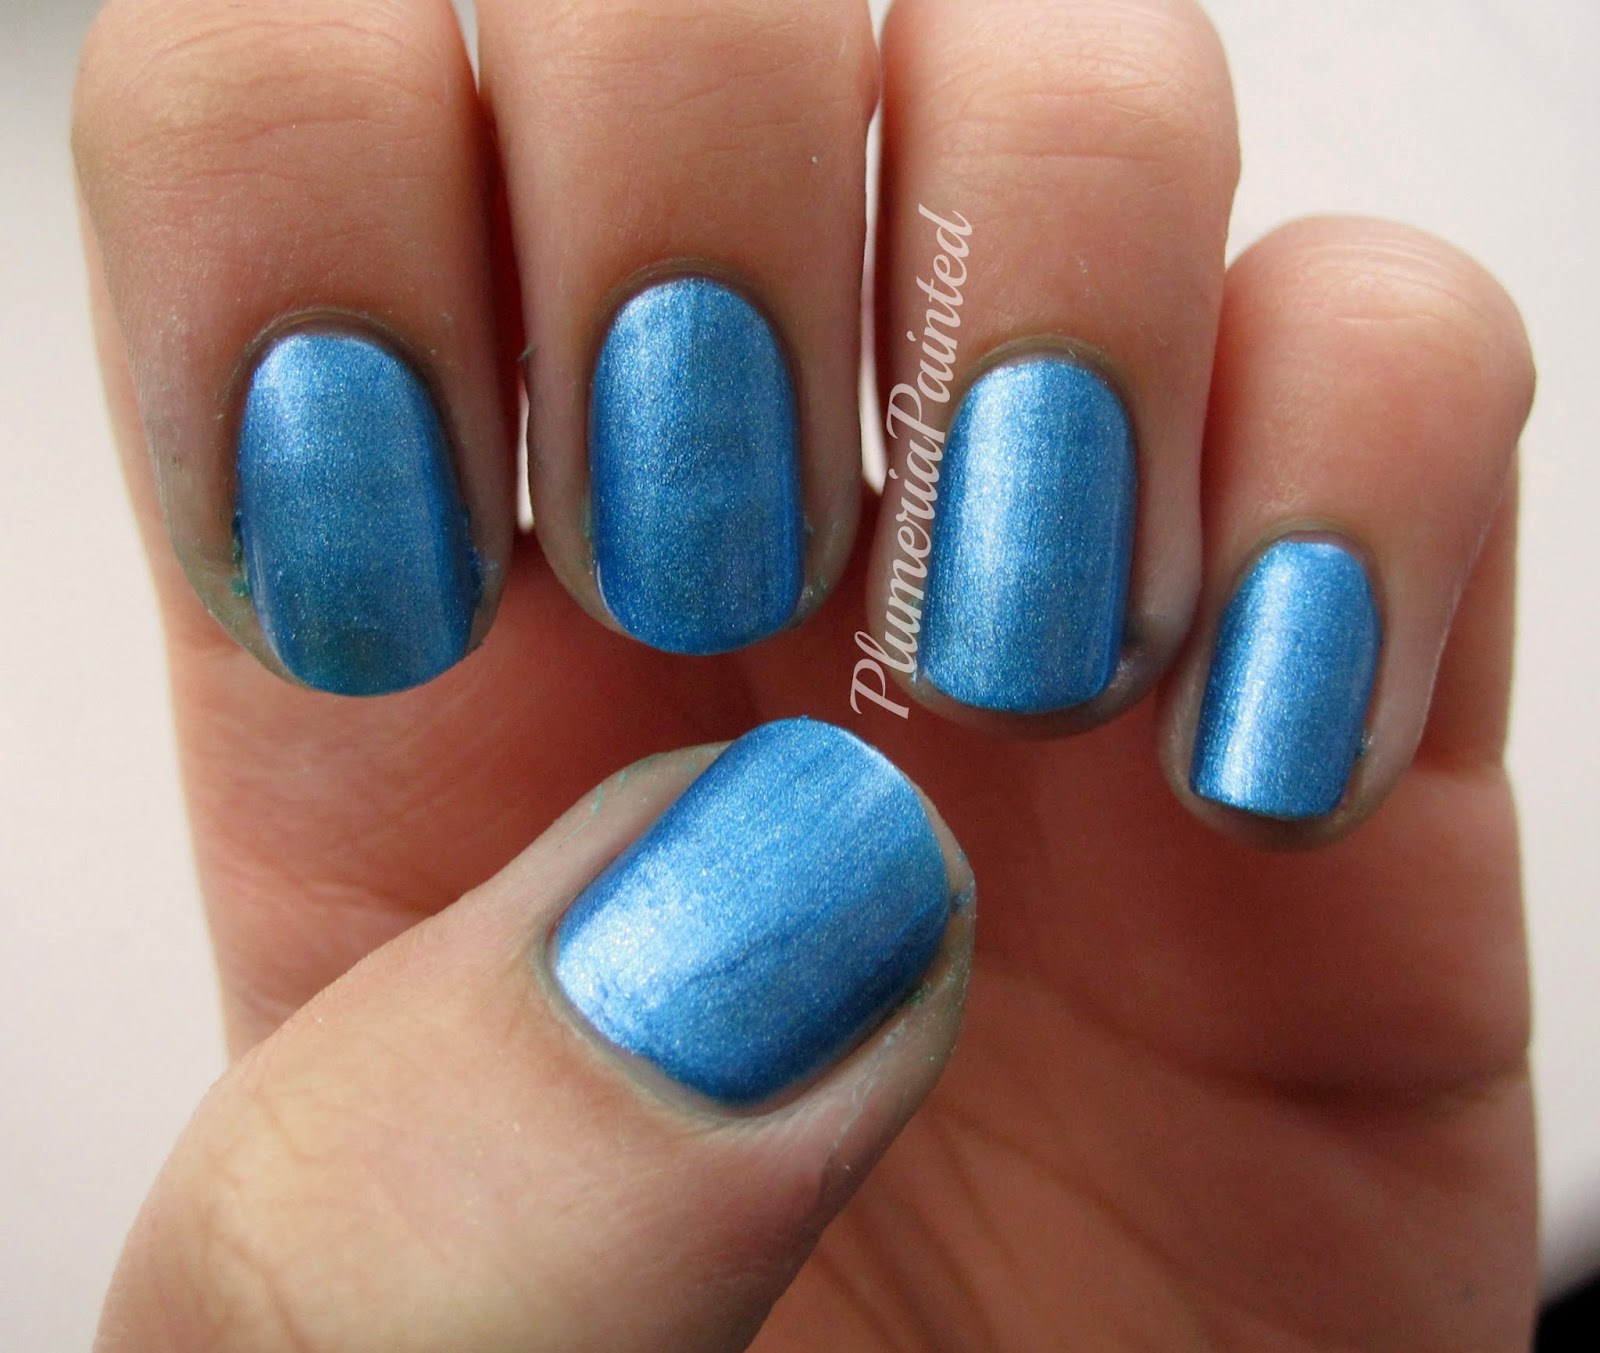 PlumeriaPainted: Blue Nails: Spa Ritual - Navigate